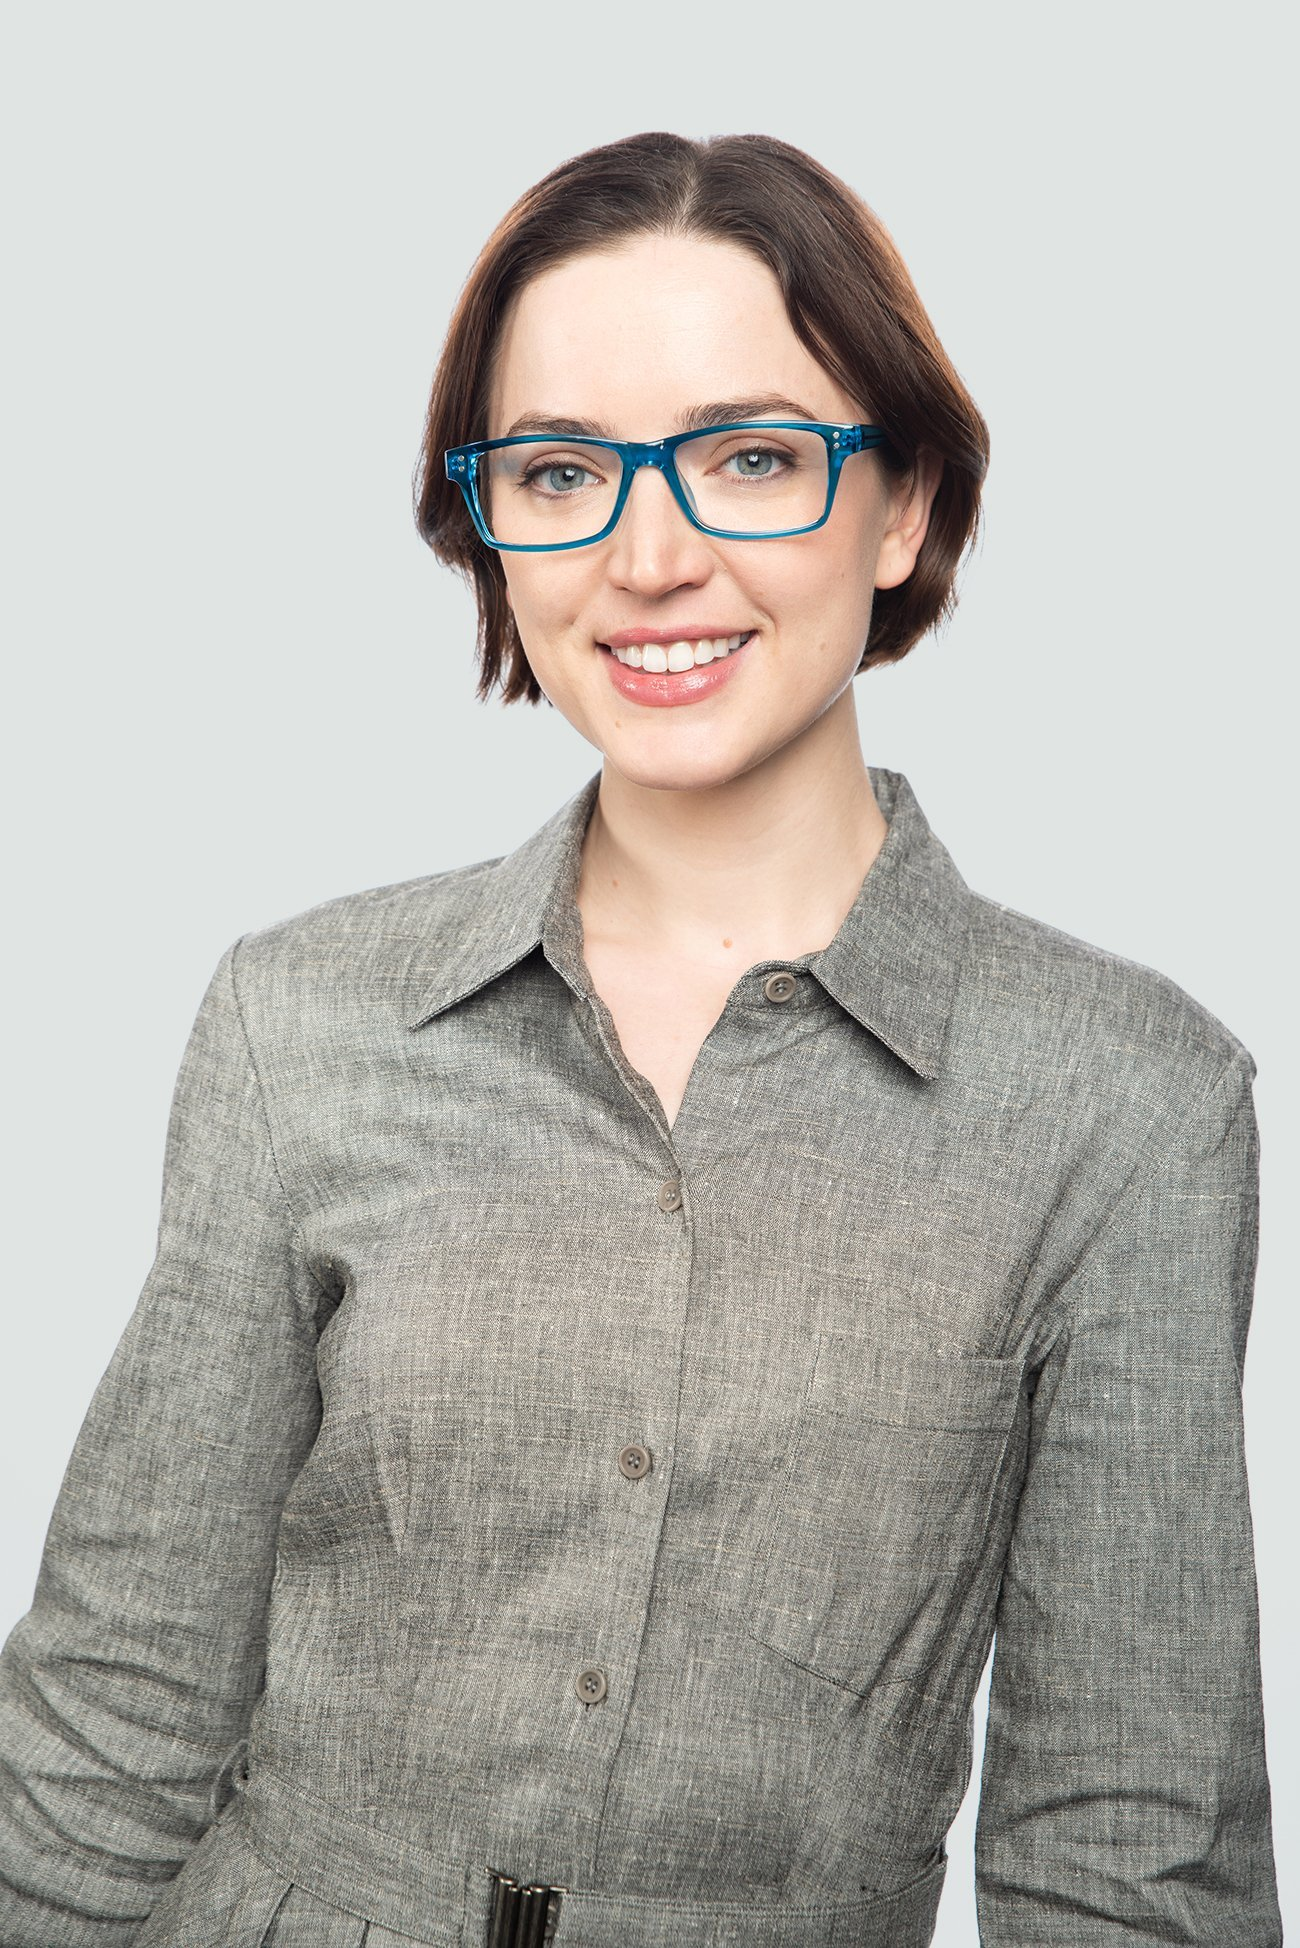 brunette woman wearing plastic blue glasses